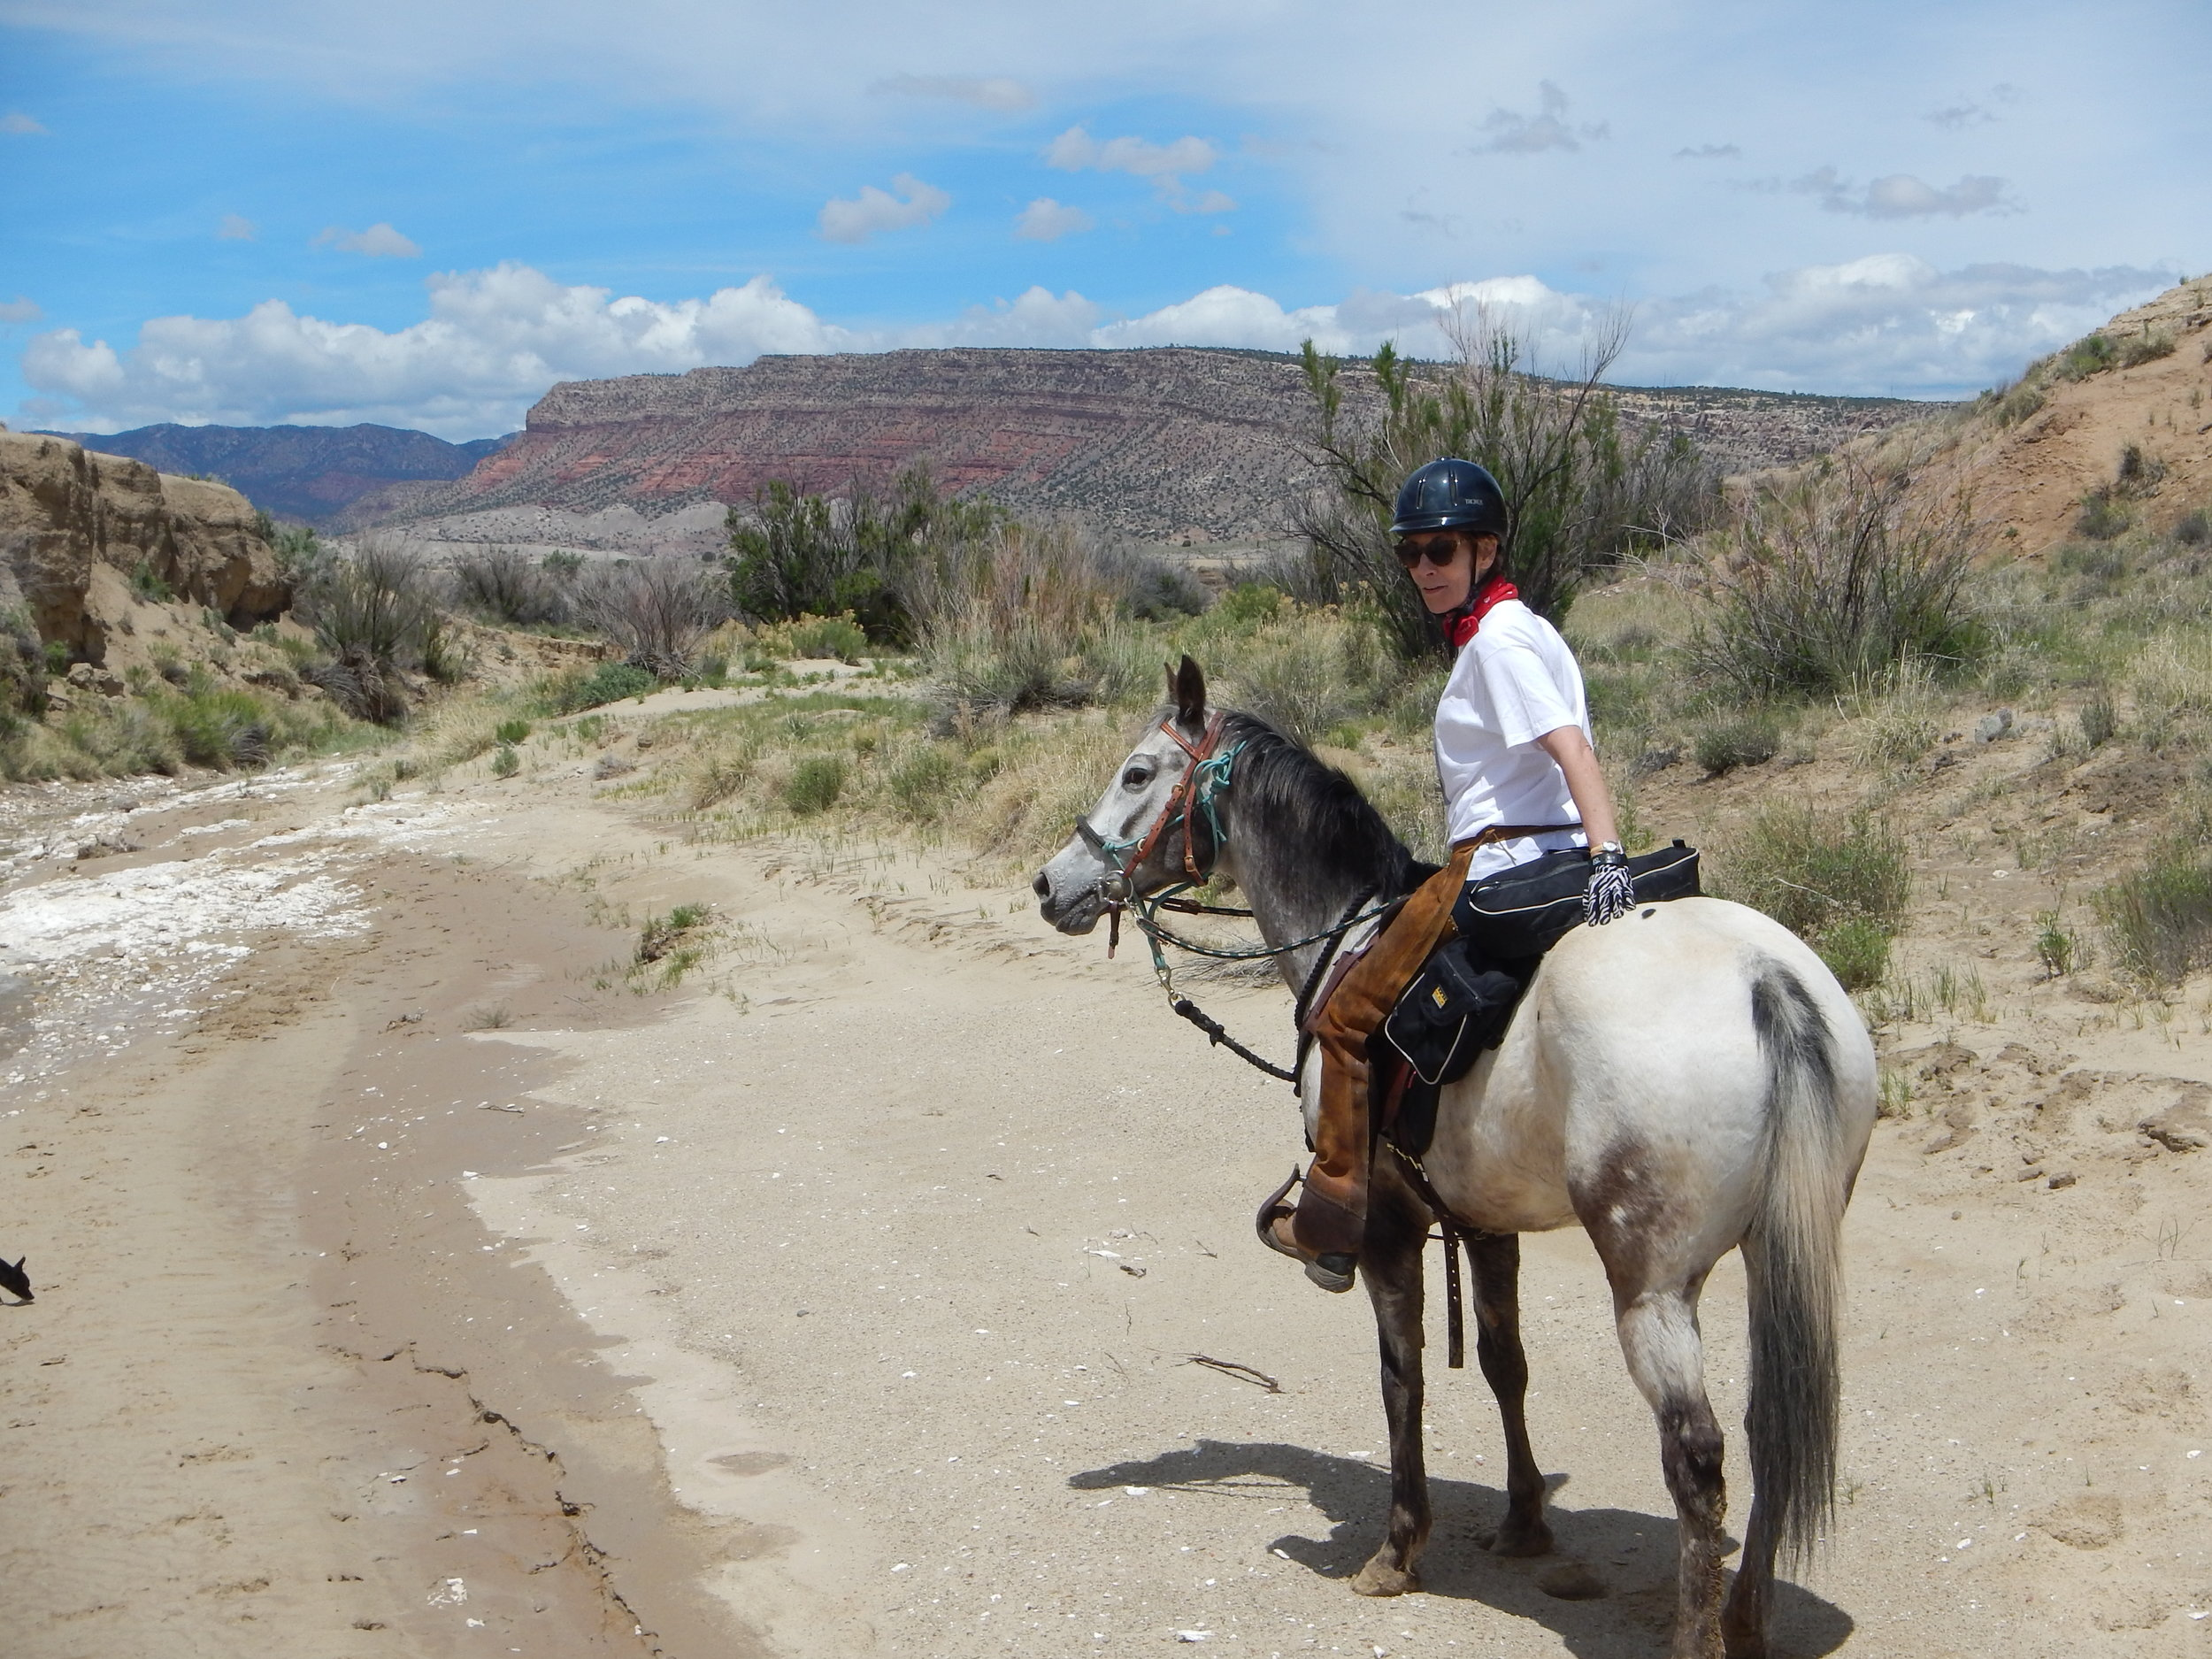 Mel and Justyn are skilled horsewomen who have transformed rescue horses that once suffered neglect and abuse into trusted, willing trail companions. - ~ SIRI